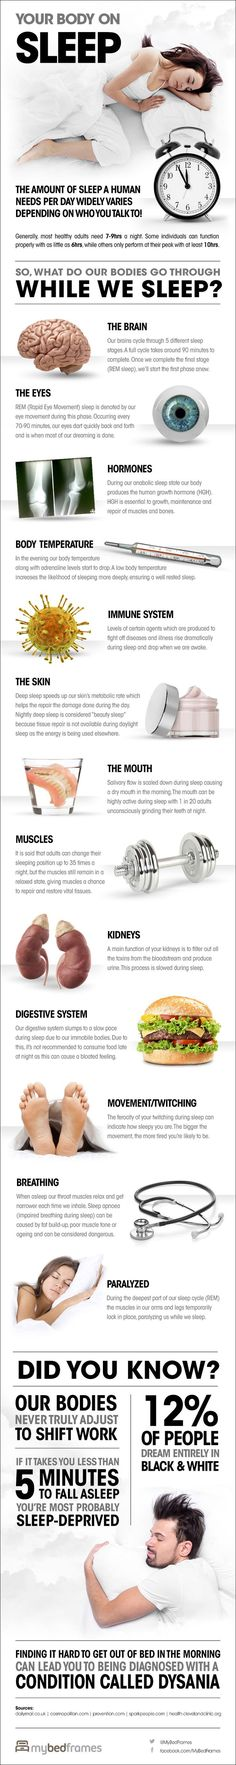 Your Body On Sleep (Infographic) Sleep is the foundation for success in all areas of your life!